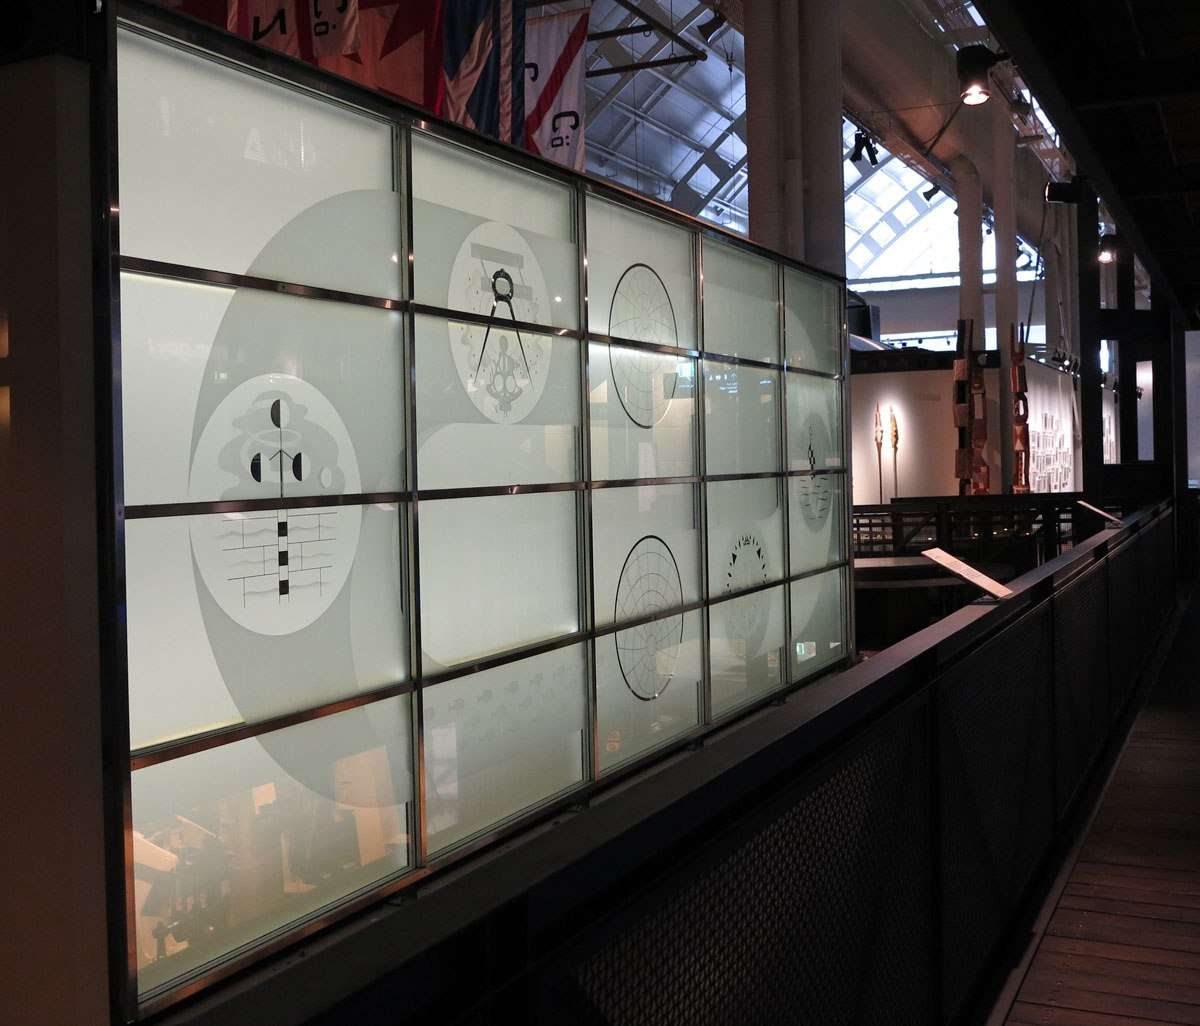 Panels from the Orient Line Building design by Lynton Lamb - on display at the Australian National Maritime Museum.